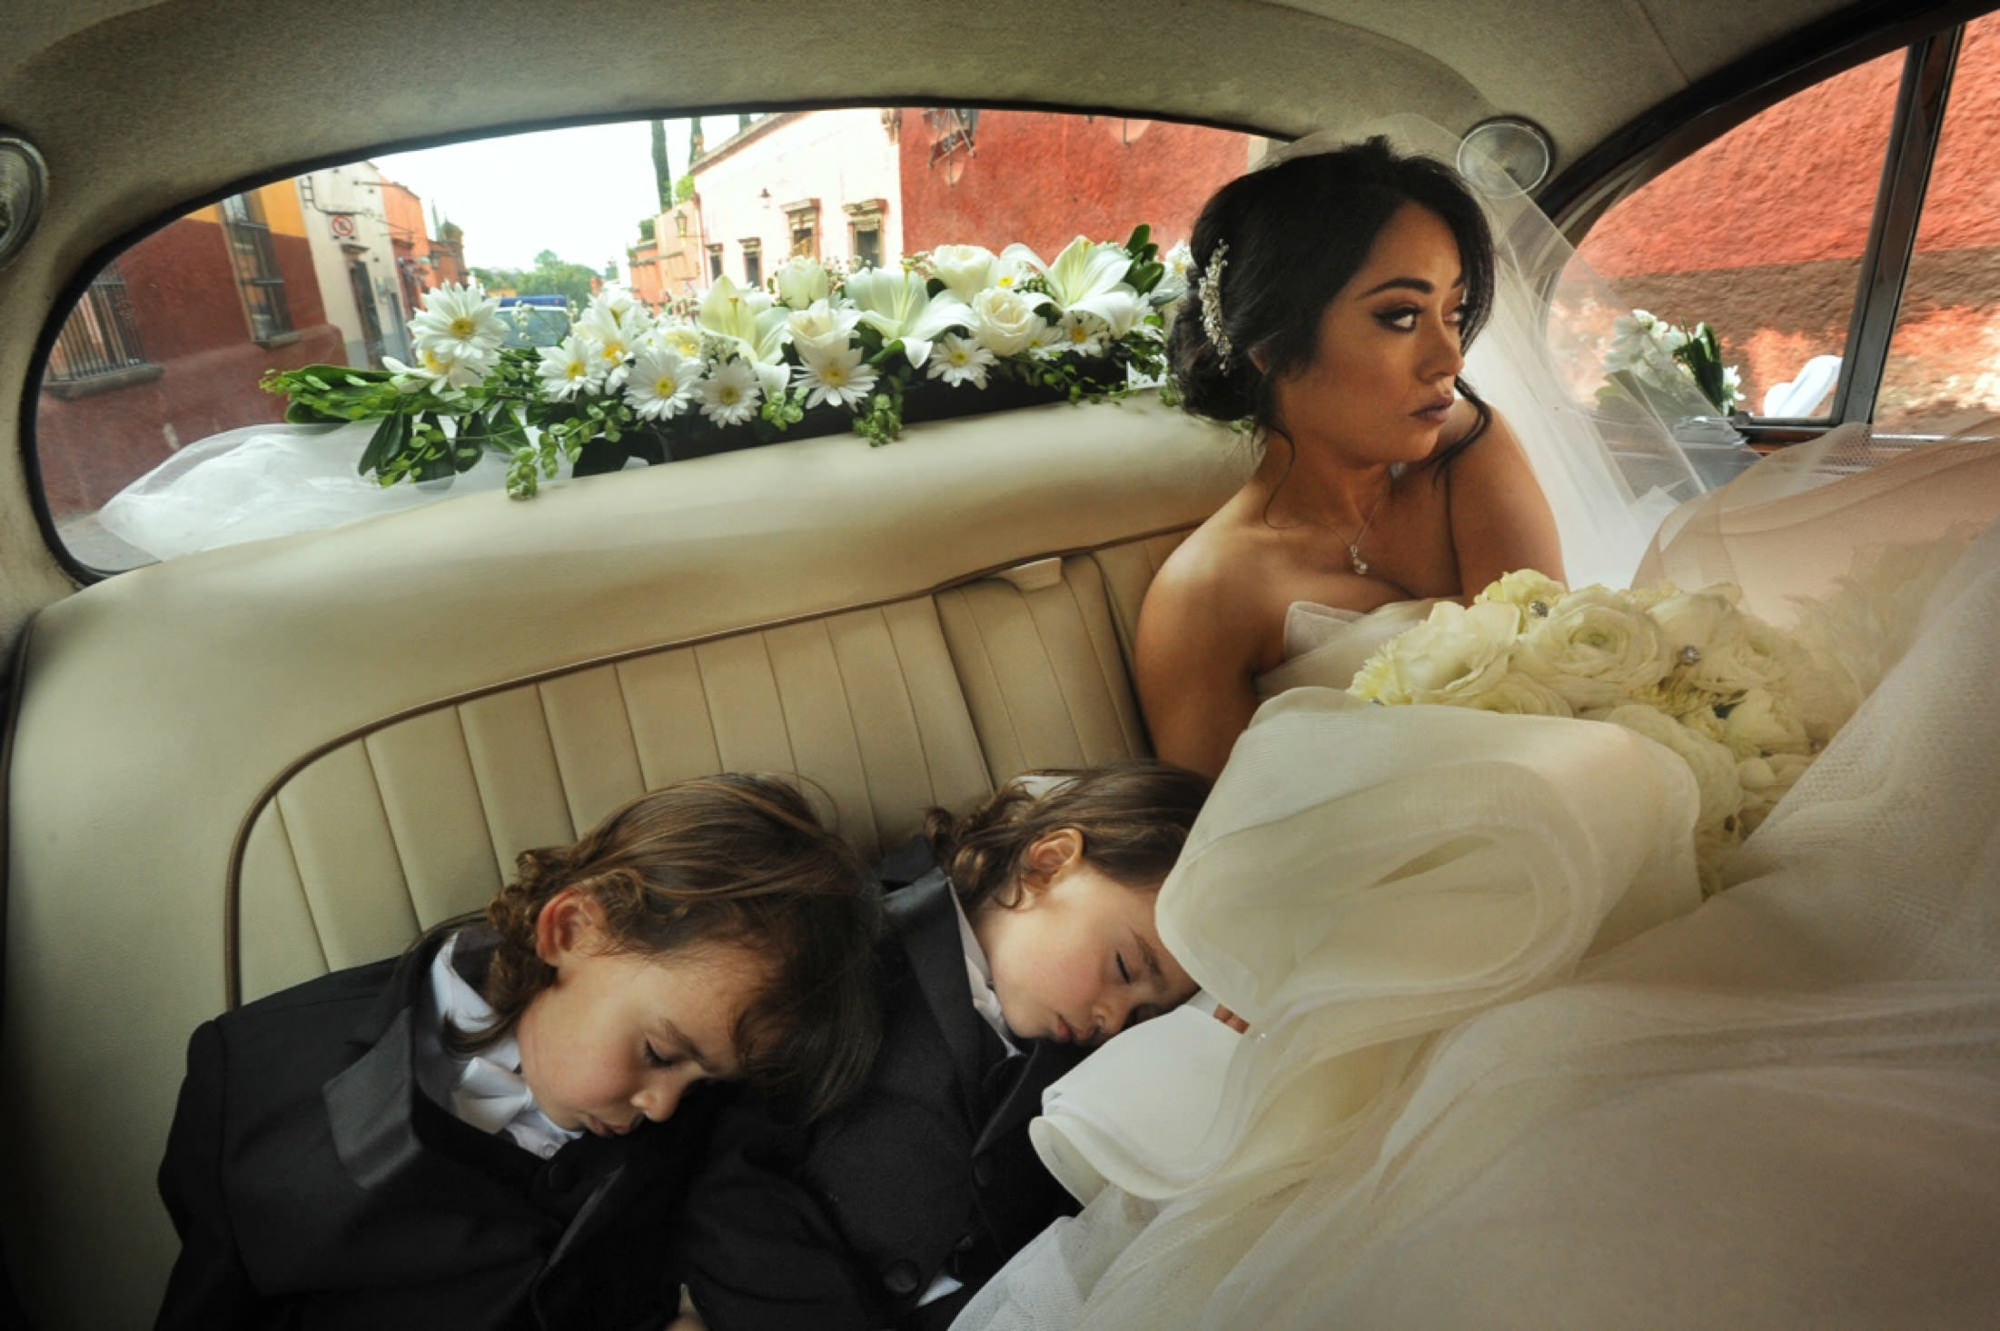 Twins fast asleep in back of car with mom bride - Daniel Aguilar Photographer